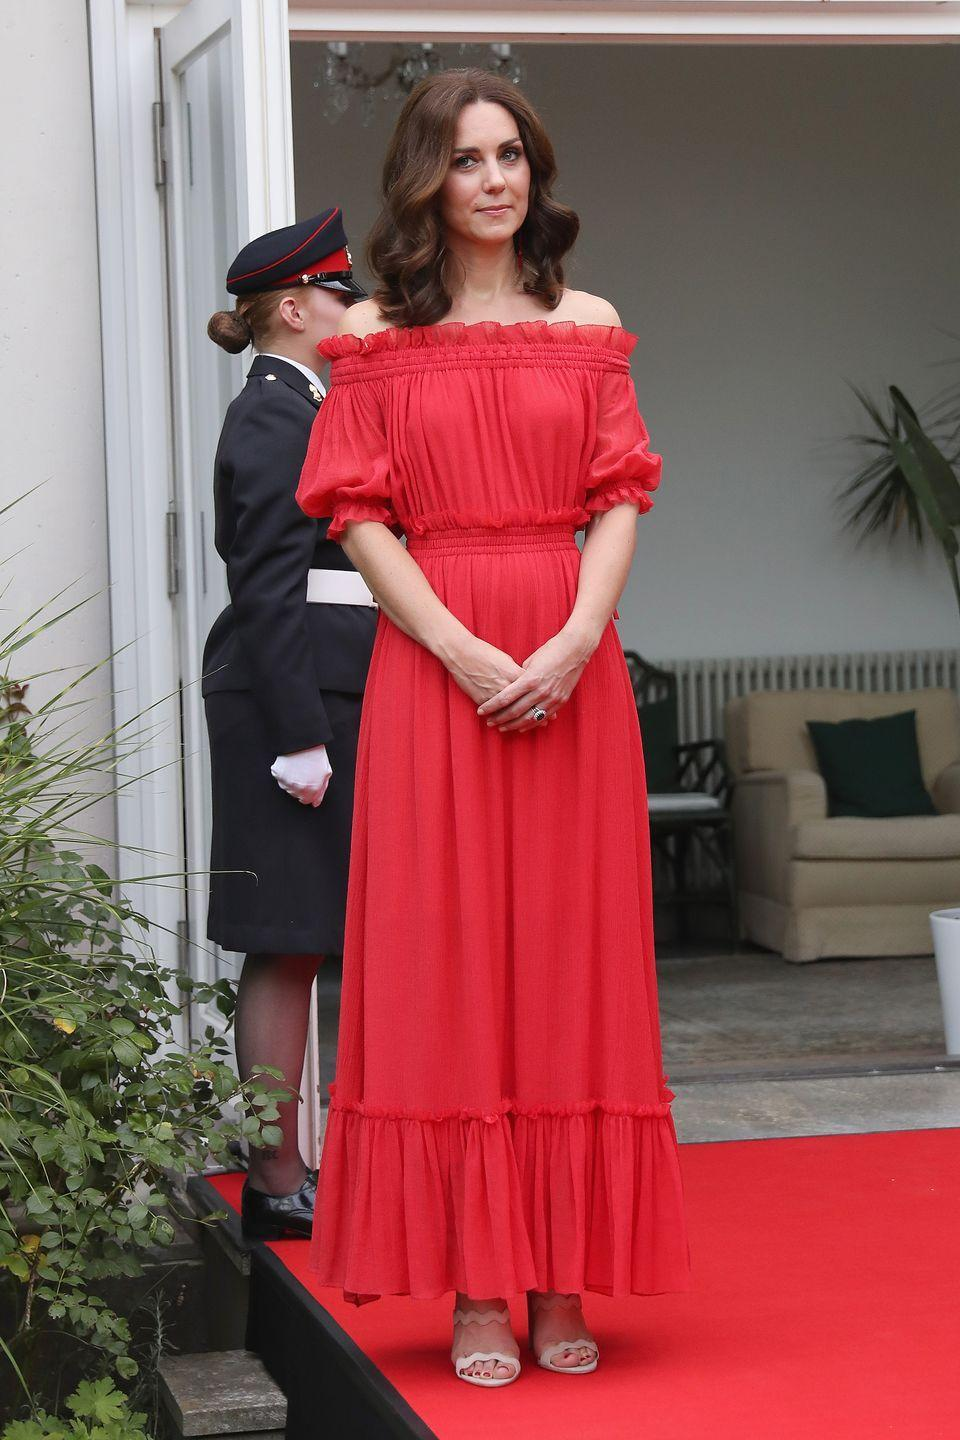 <p>The red off-the-shoulder Alexander McQueen dress Kate Middleton wore in Berlin in 2017 was a bold choice for the Duchess — and dare we say Jasmine inspired? </p>